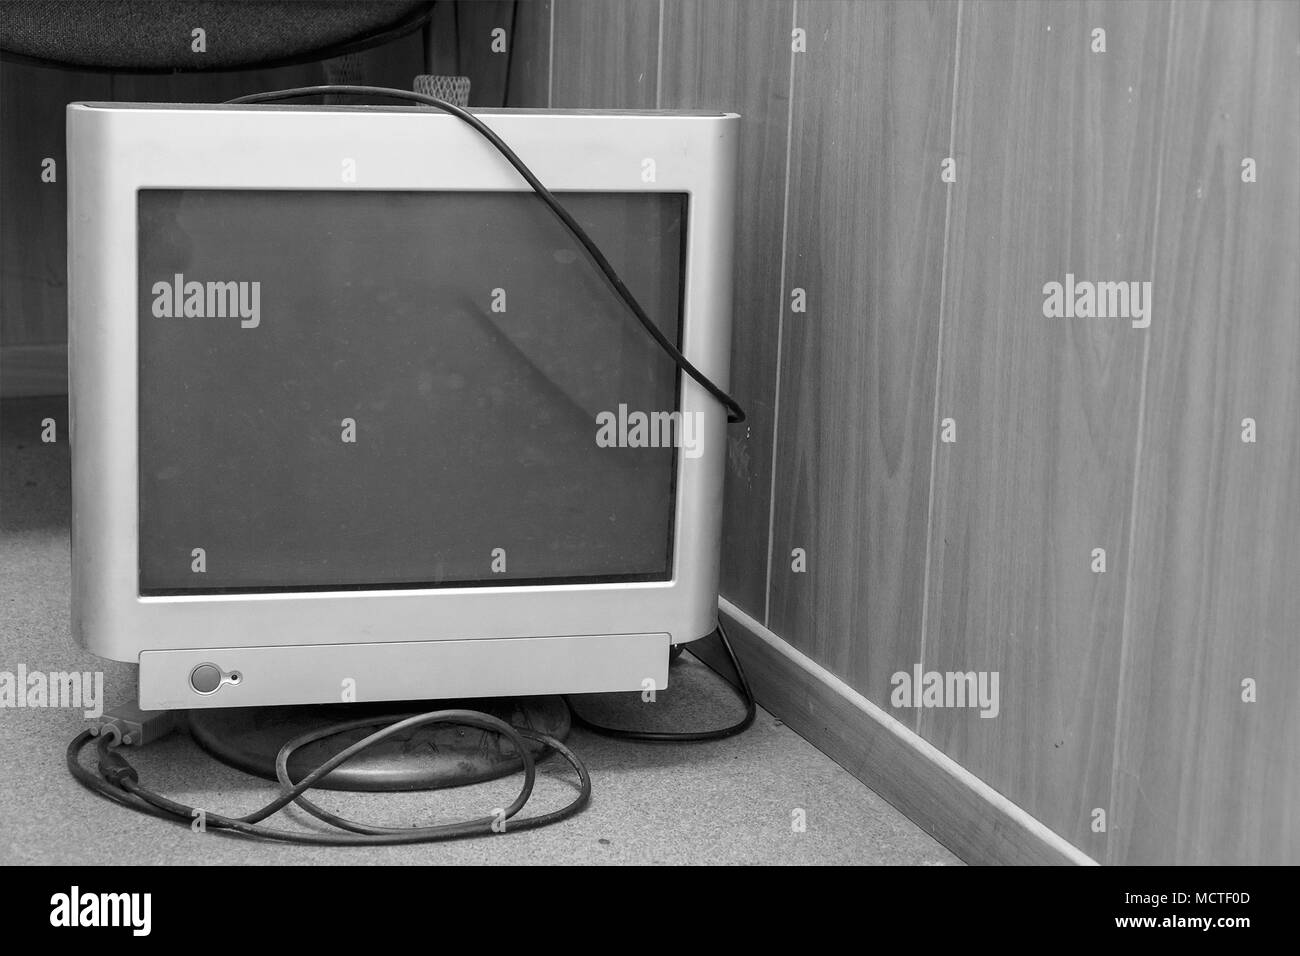 Obsolete old computer monitor - Stock Image